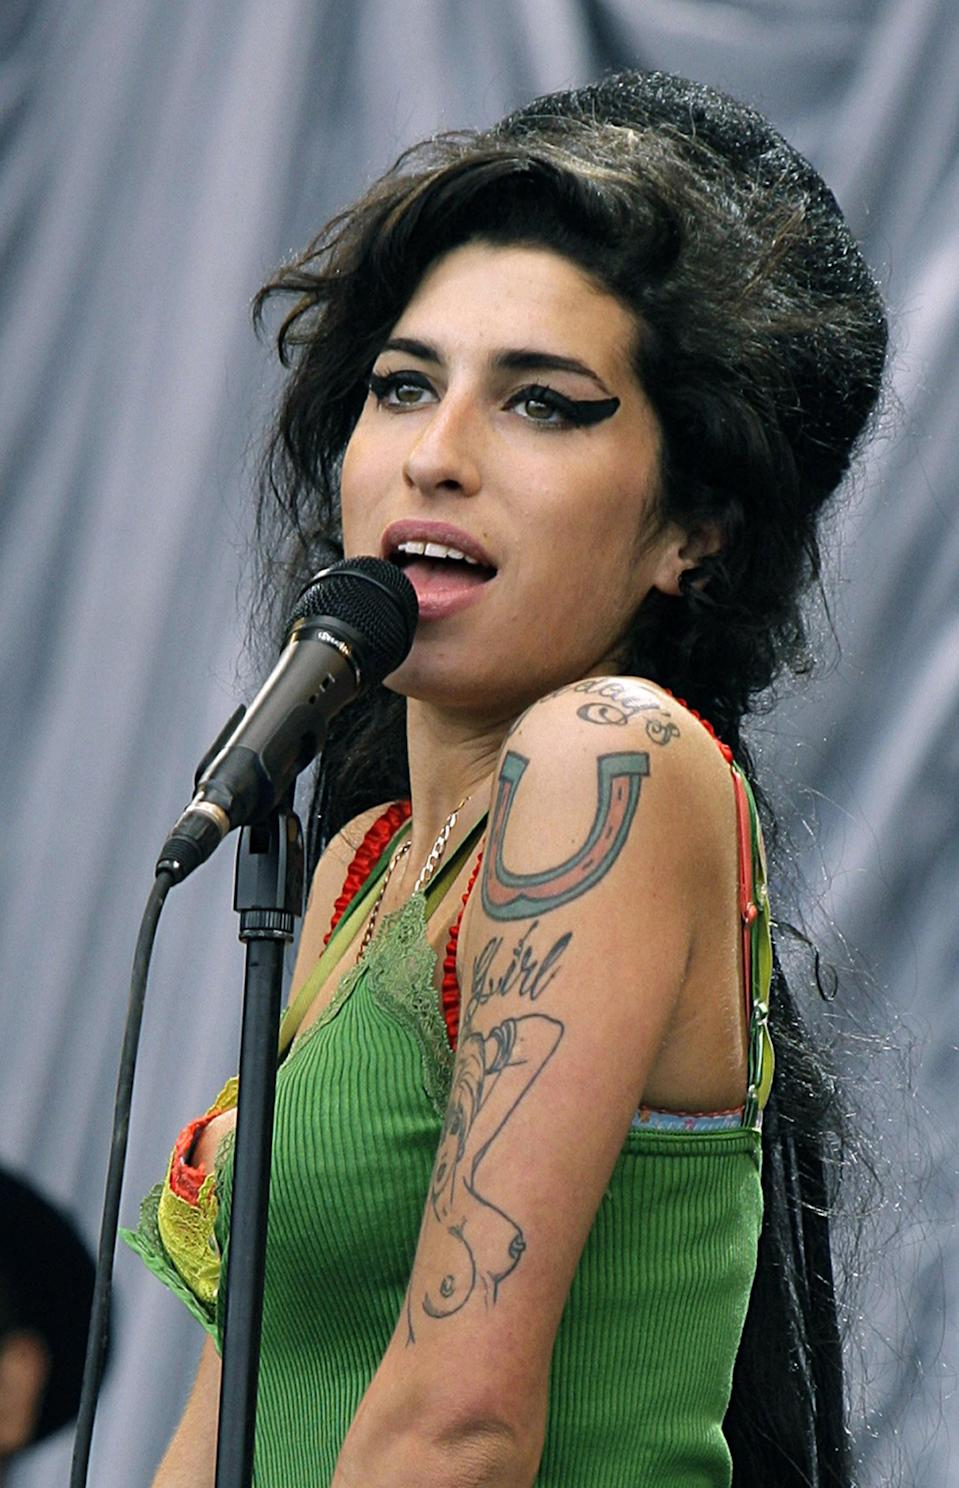 <b>Amy Winehouse (14 September 1983 to 23 July 2011)</b> <br><br>Singer Amy Winehouse had a short but incredibly successful career. Her two albums, 'Frank' and 'Back to Black', won critical praise as well as a plethora of awards. Famed for her unique voice and unrepentant attitude, Winehouse shot to stardom in 2003 after the release of debut album 'Frank', which went double platinum.<br><br>Critically as well as commercially successful, 'Frank' gained Winehouse an international following. Her second album 'Back to Black' proved to be even more successful – winning five Grammys. In particular the singles 'Rehab', 'Back to Black' and 'You Know I'm No Good' put Winehouse at the forefront of British music. Her cover of The Zutons song 'Valerie' was one of the biggest hits of 2007, spending 19 consecutive weeks in the UK top 20.<br><br>Despite her wildly successful music career, Winehouse had a troubled personal life. She suffered with drug and alcohol addiction for a number of years, as well as admitting problems with depression, self-harm and eating disorders. Her fractious relationship with ex-husband Blake Fielder-Civil also served up a number of flash points as their divorce was made public and splashed across the tabloids in 2009.<br><br>Winehouse's sudden death from alcohol poisoning in September shocked the nation, leaving thousands of fans mourning her loss.<br>